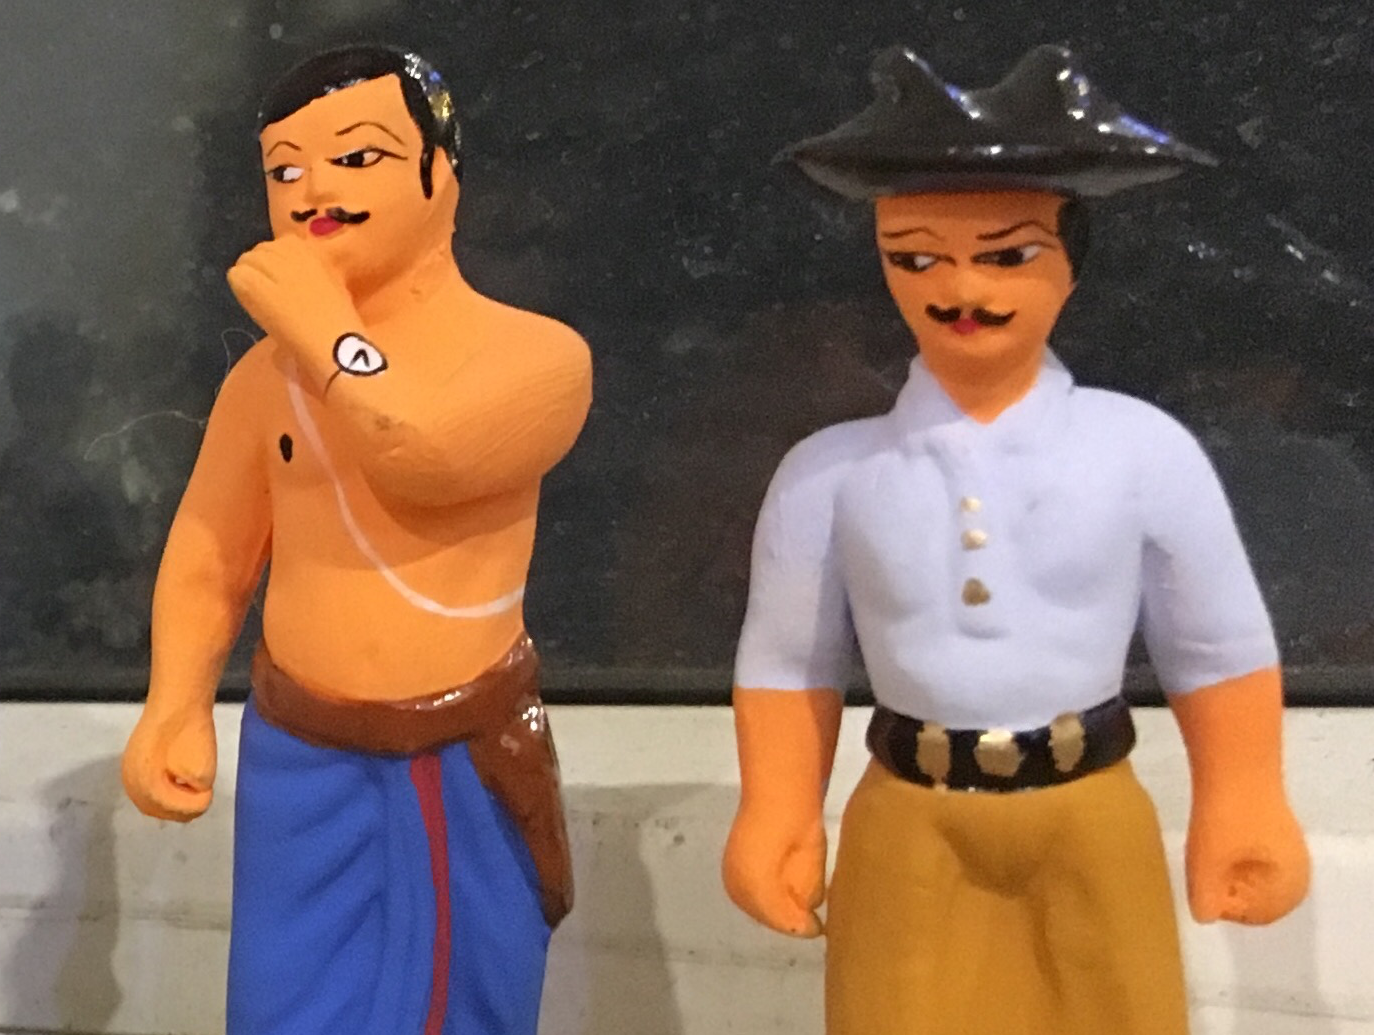 Miniatures of Chandrashekhar Azad (left) and Bhagat Singh. Credit: The Wire